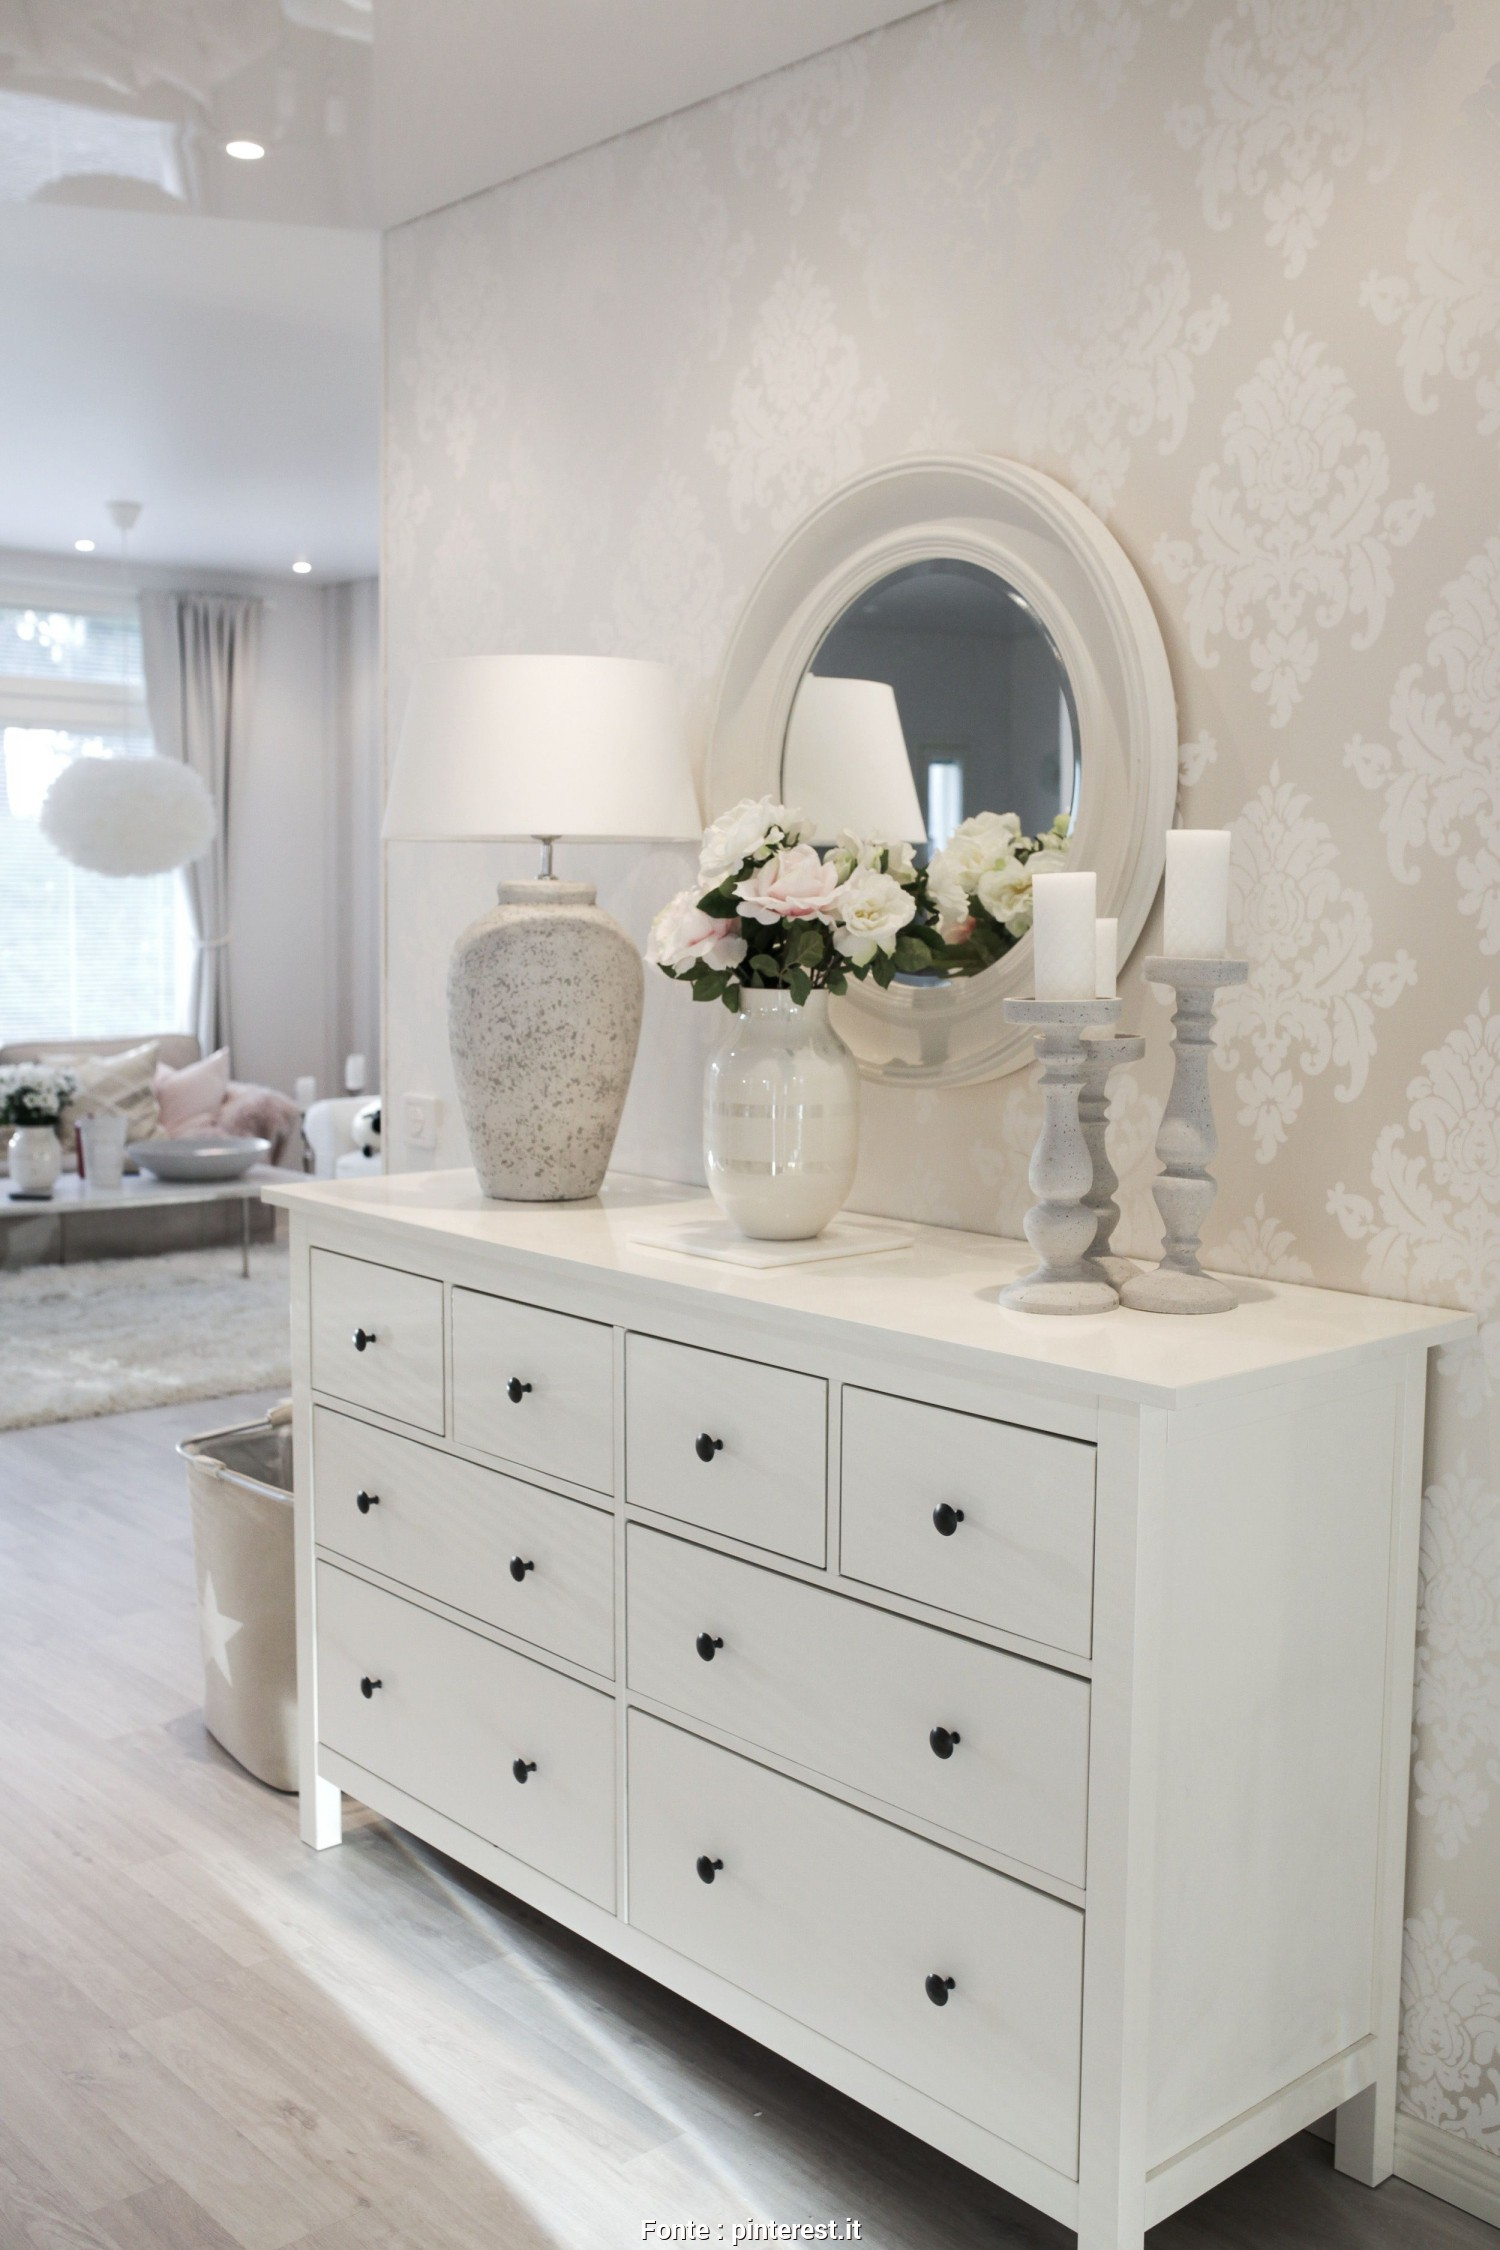 Hemnes Letto, Esotico This Hallway Looks Great. Love, Use Of An IKEA Hemnes Dresser